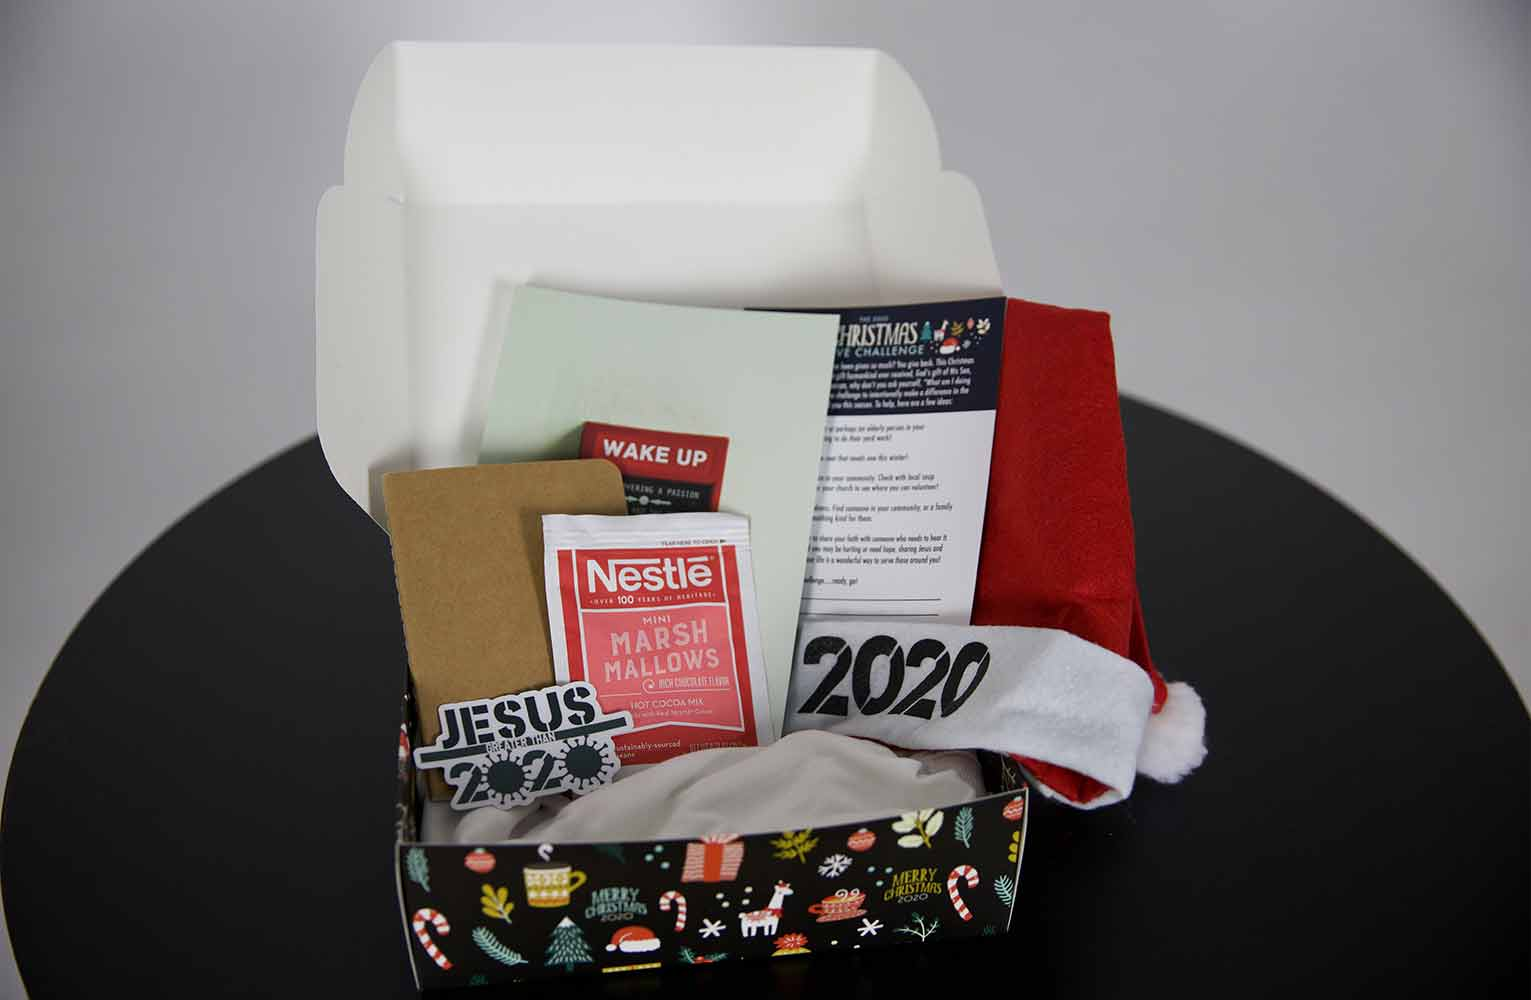 Wake Up Devotional Christmas Gift Box